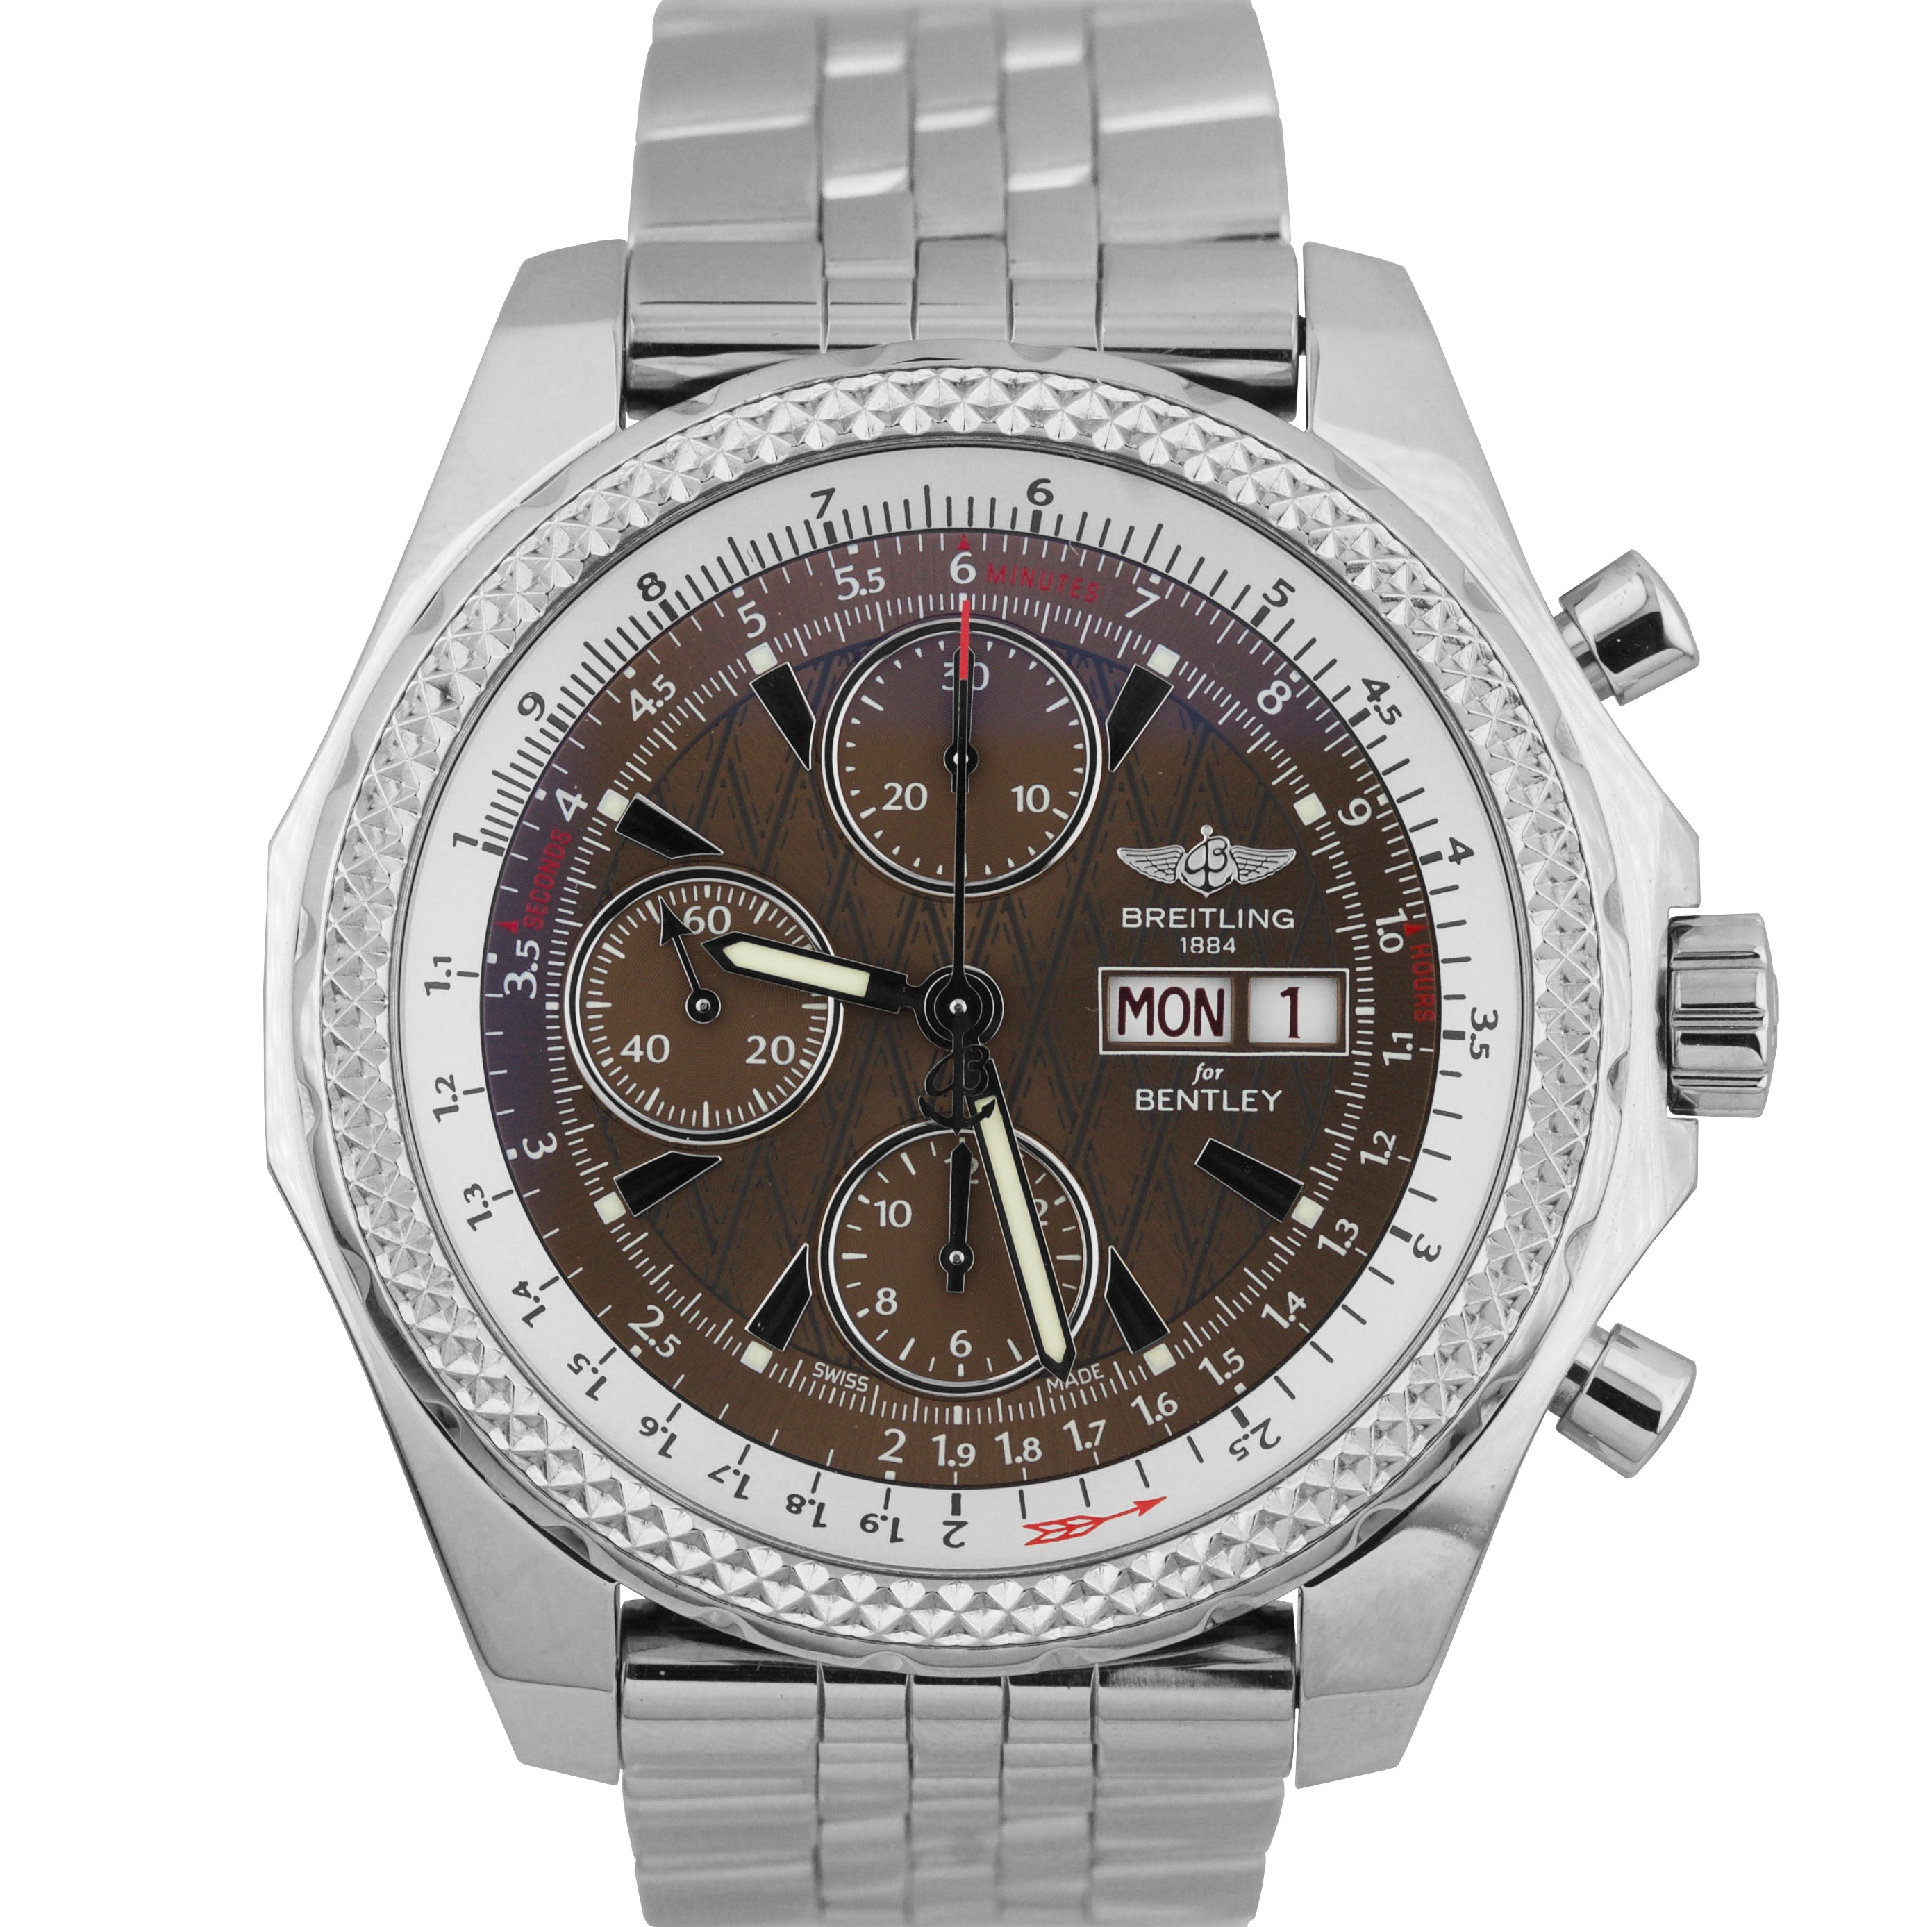 Breitling Bentley GT Day-Date Chronograph Bronze Stainless A13362 44.8mm Watch